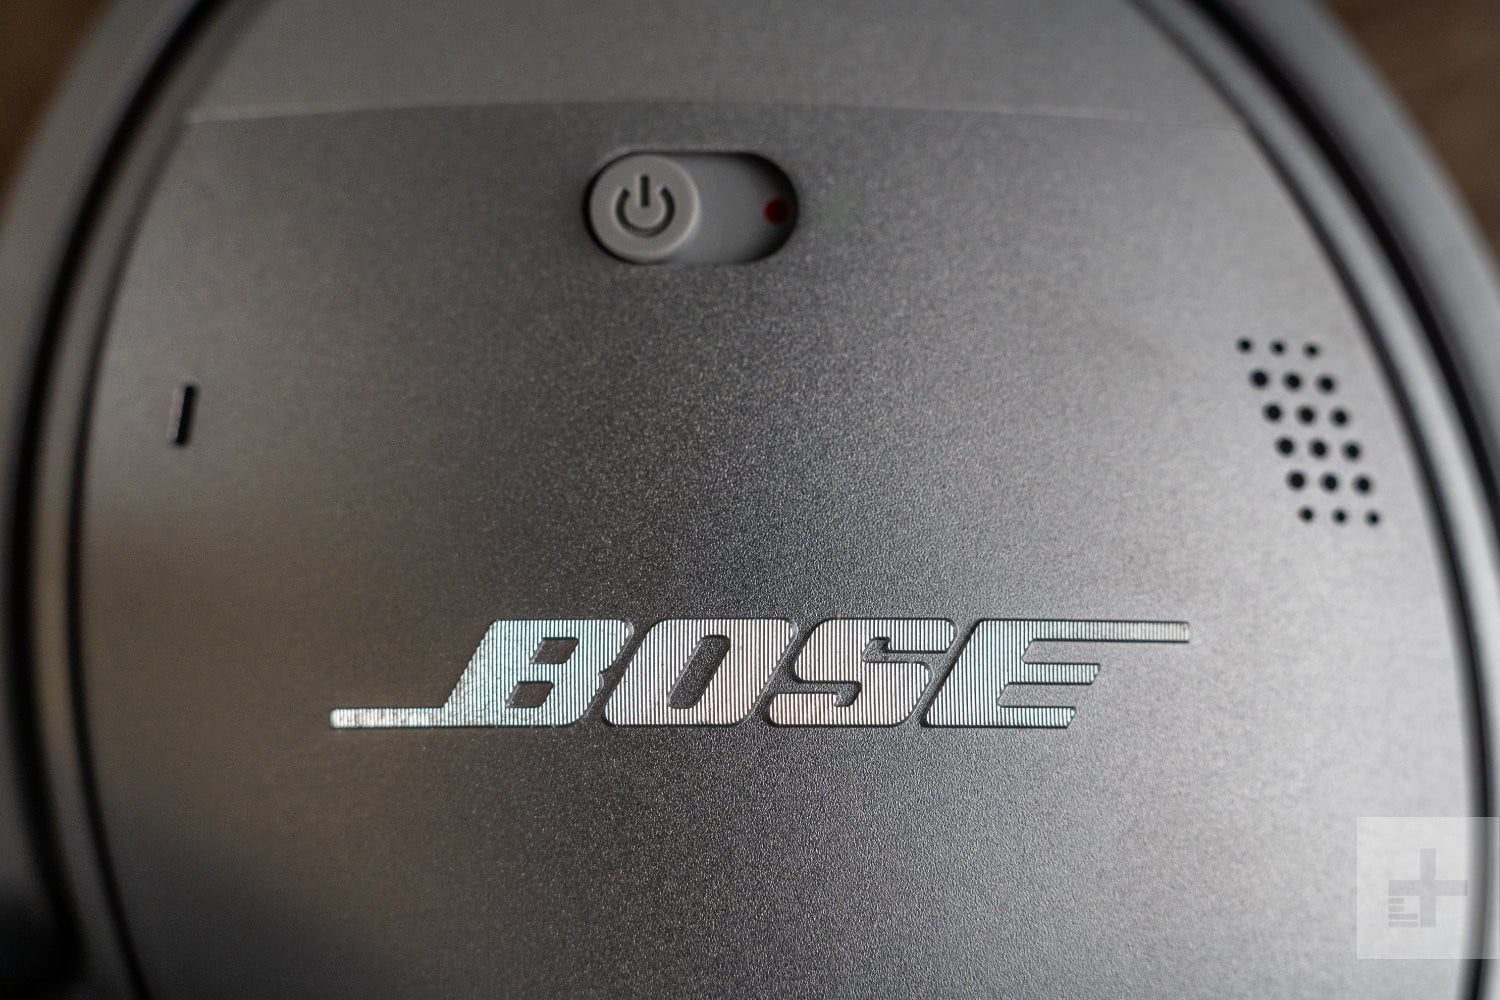 Bose to close all of its U.S. retail stores in pivot to online shopping